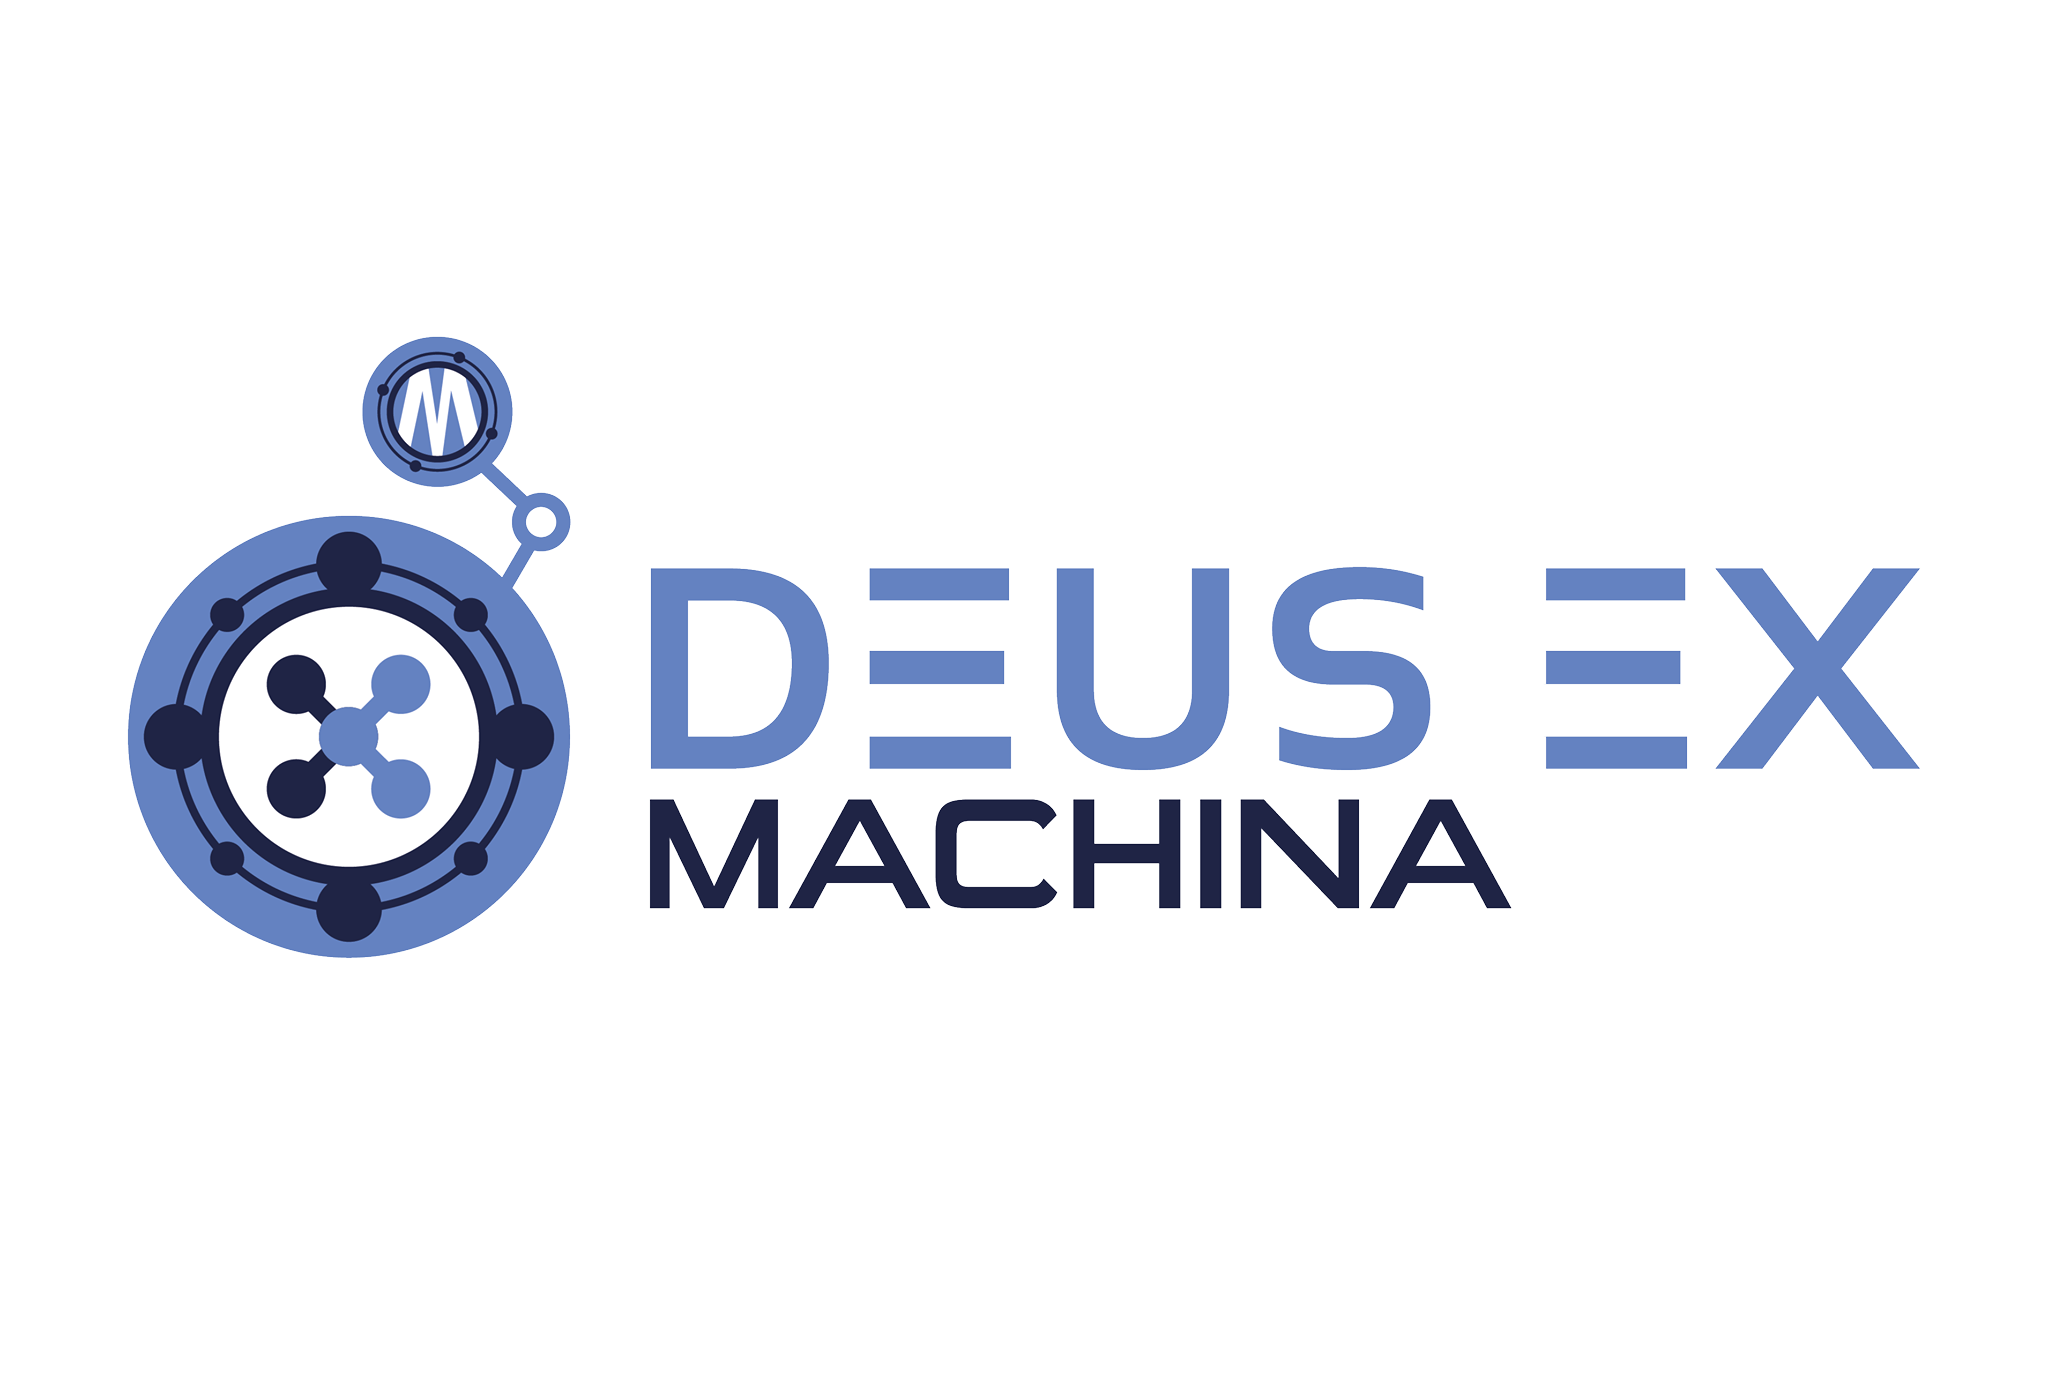 ΘΕΣΗ ΕΡΓΑΣΙΑΣ: SOFTWARE QA ENGINEER | DEUS EX MACHINA